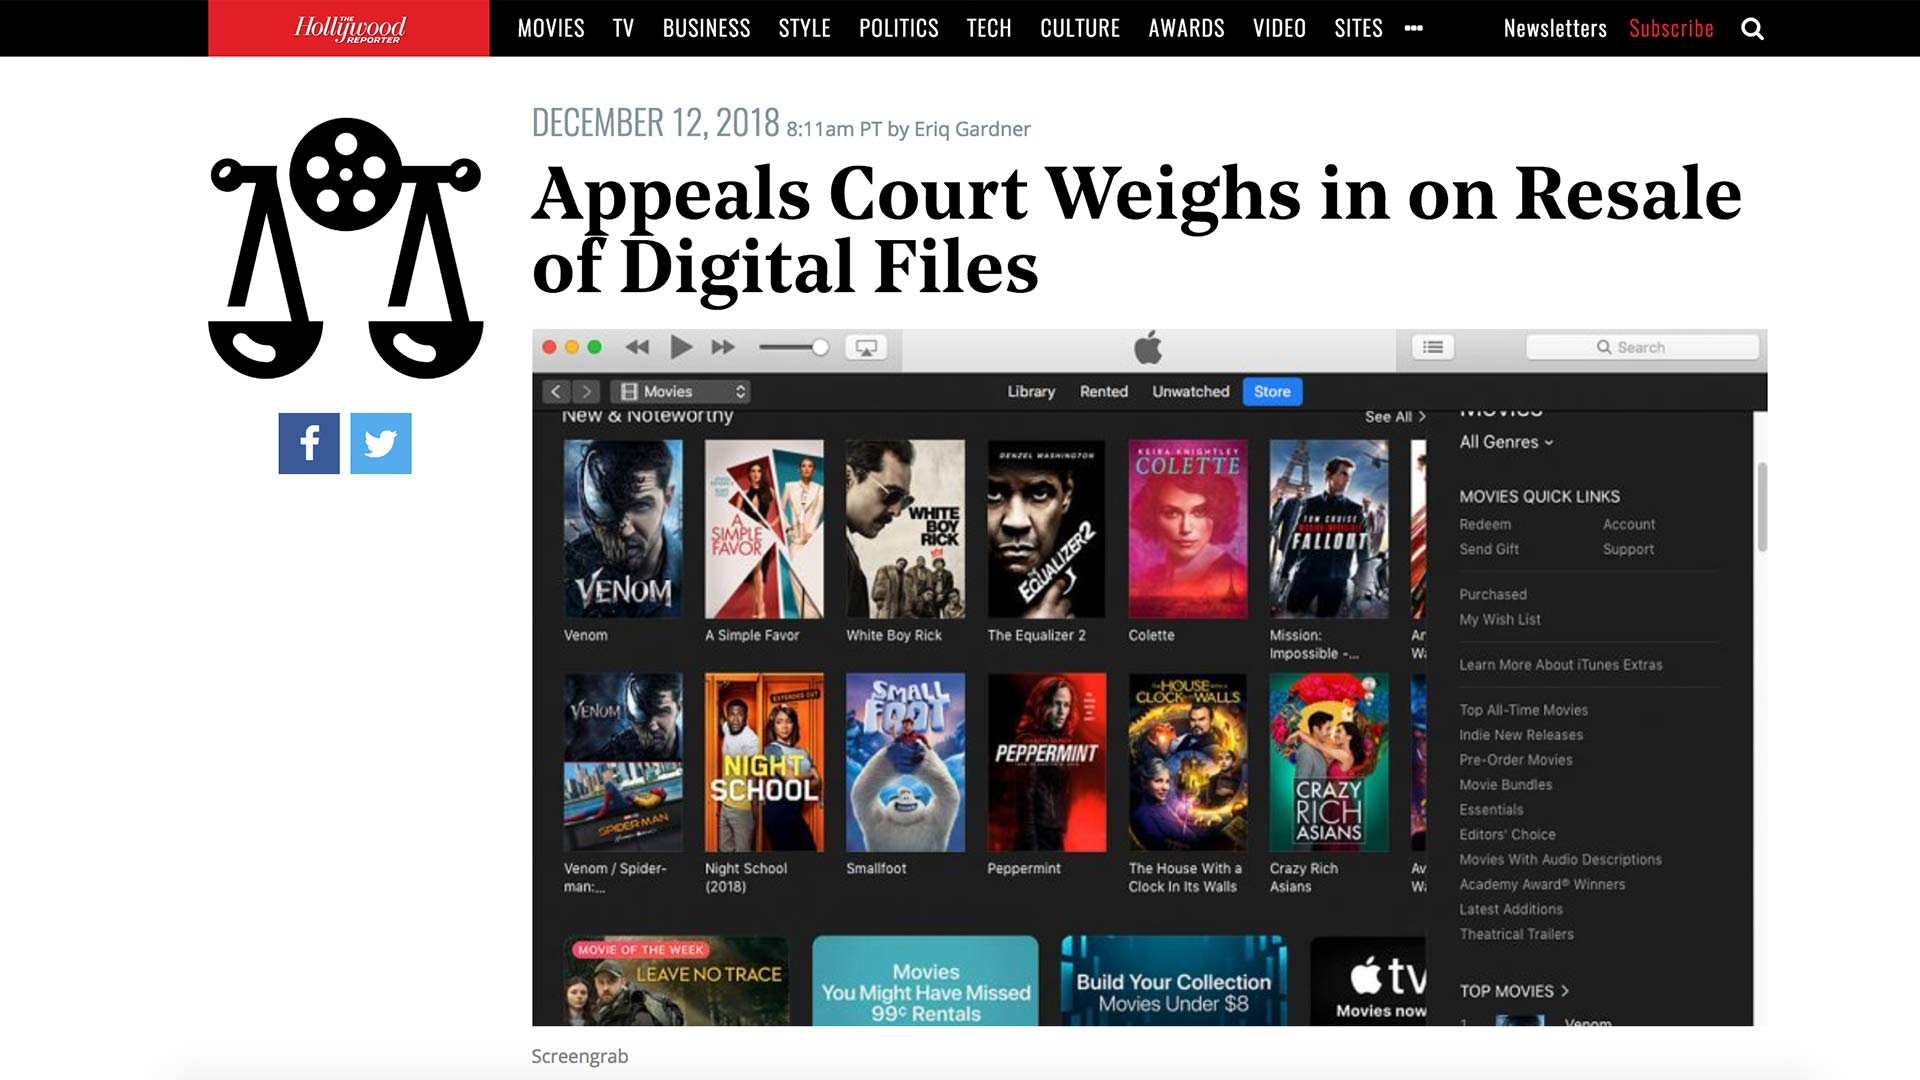 Fairness Rocks News Appeals Court Weighs in on Resale of Digital Files